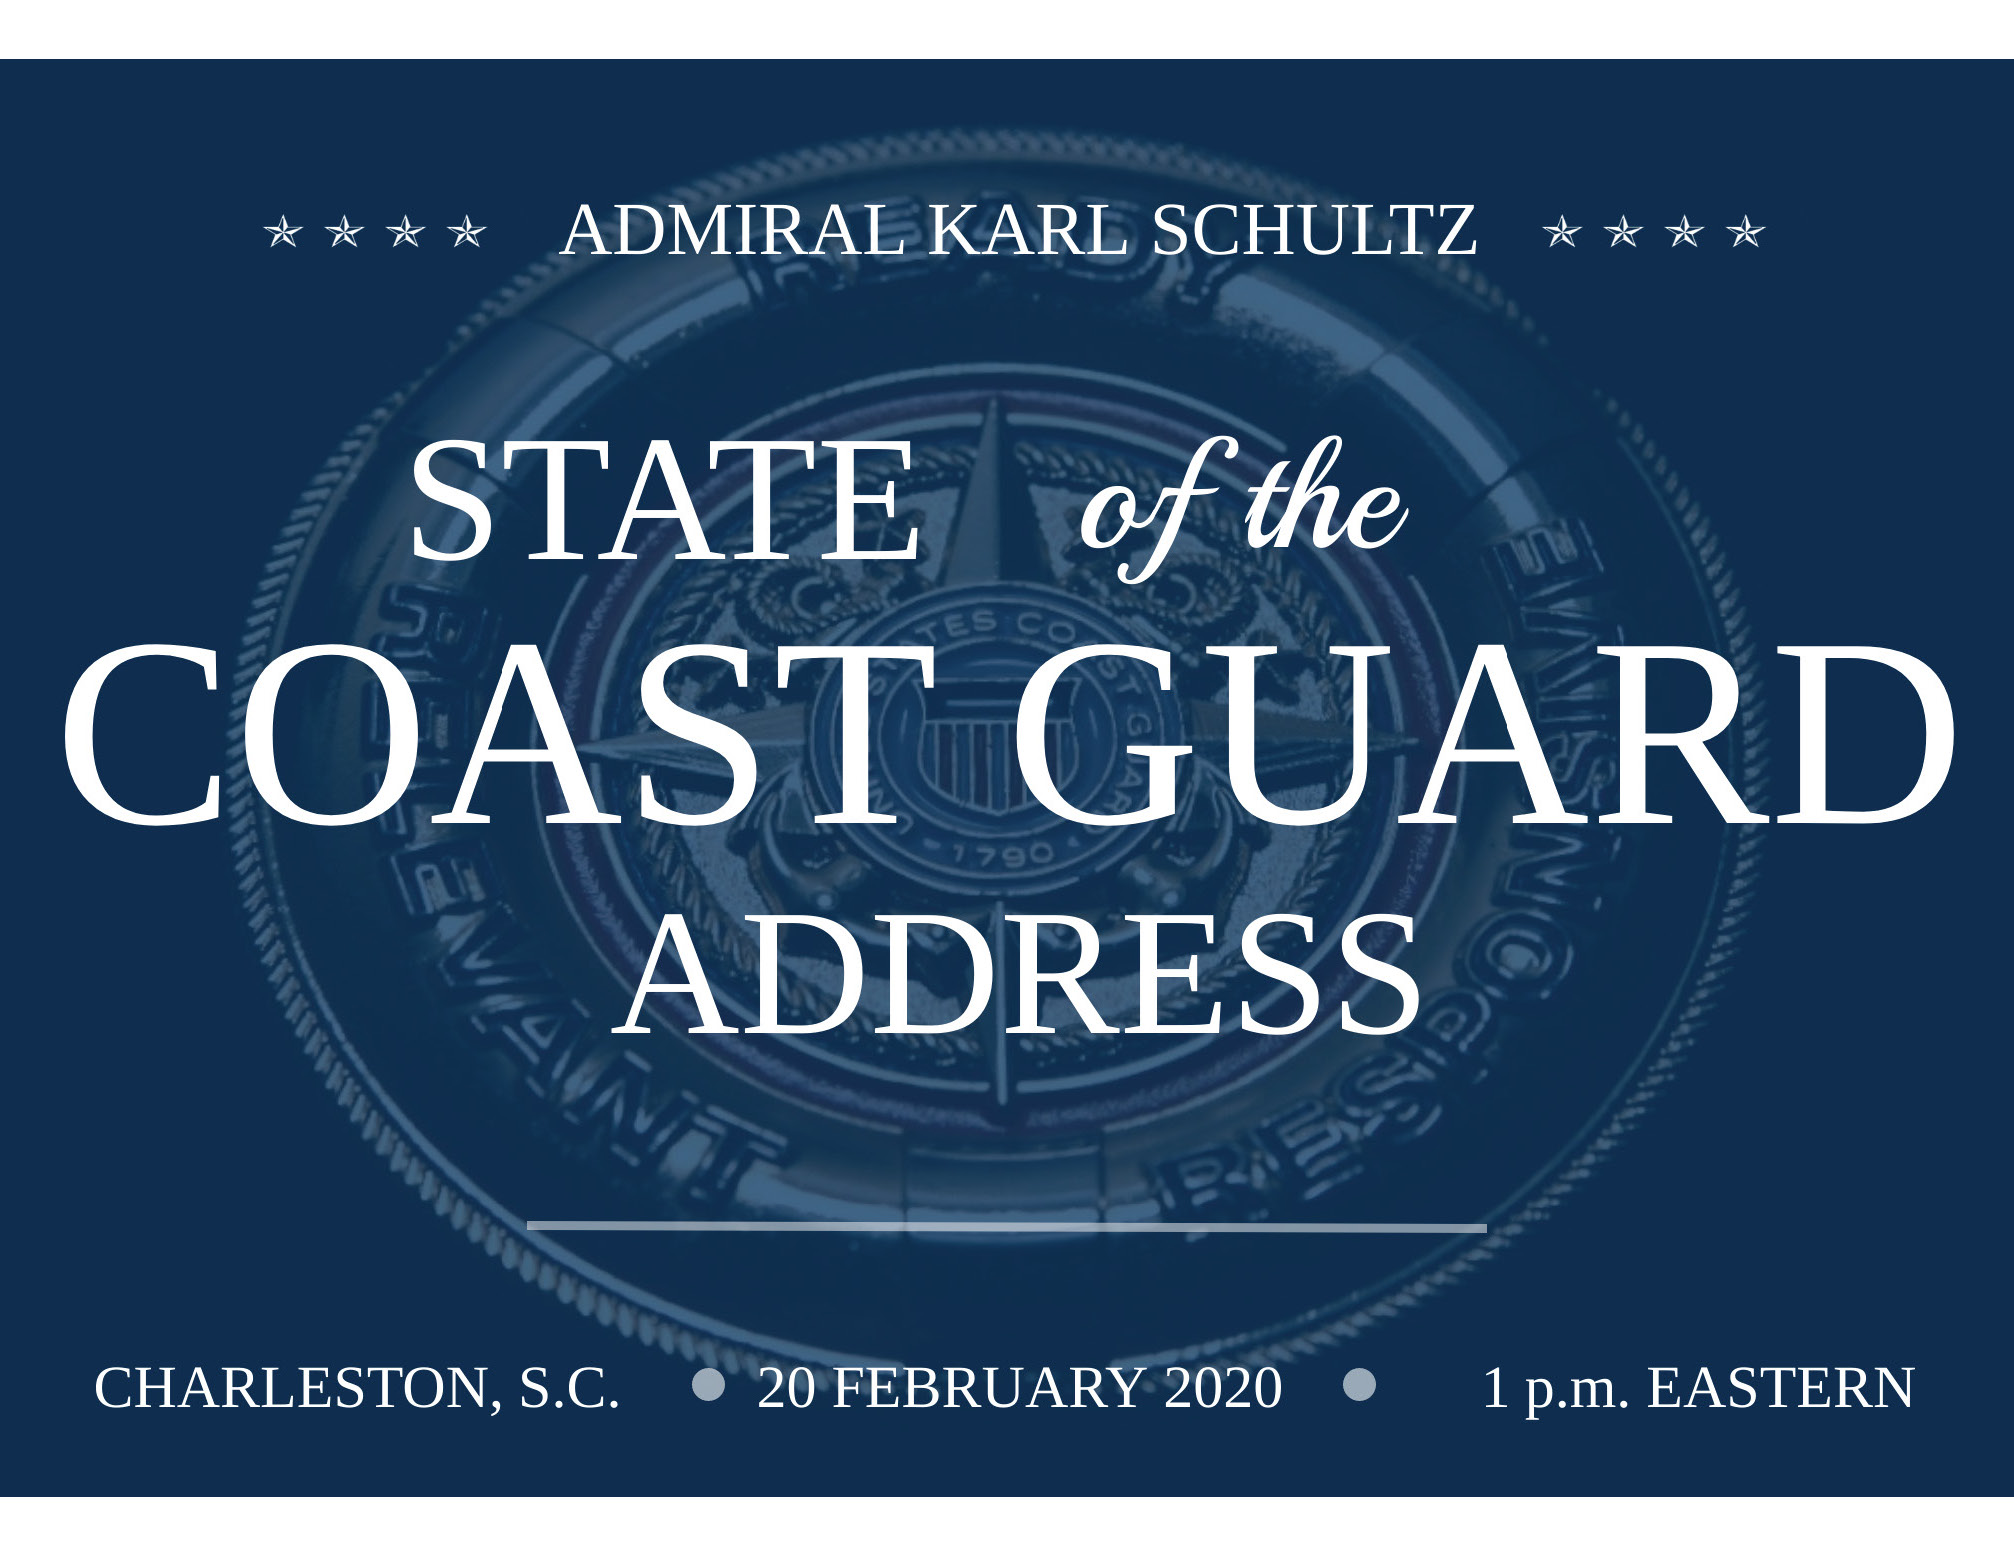 State of the Coast Guard 2020 - 20 February 2020 at 1 p.m.